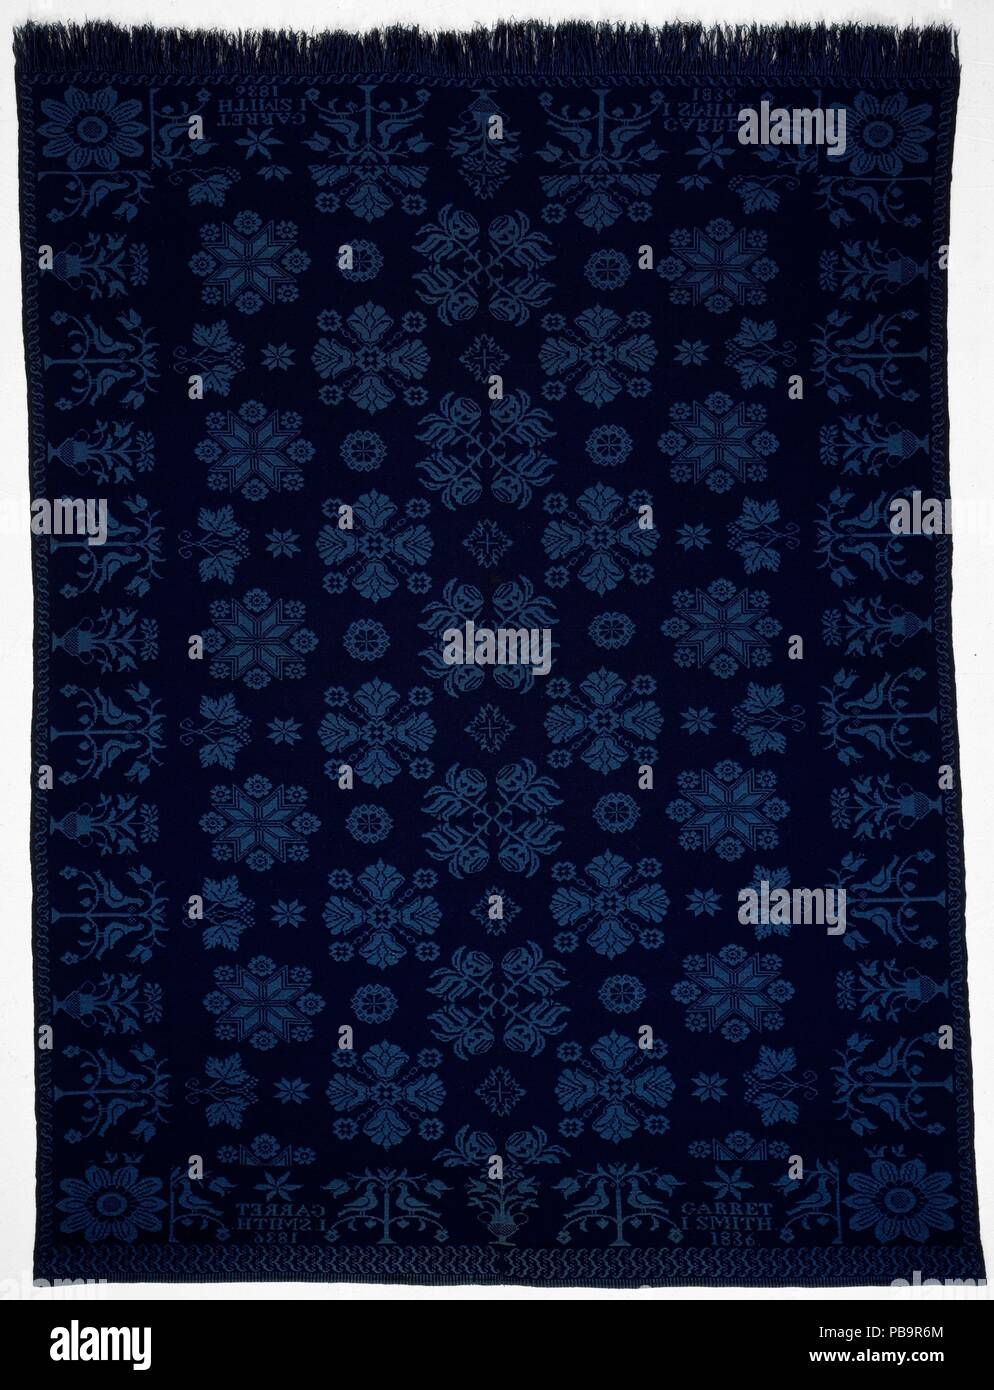 Rockland Textiles Coverlet Culture American Dimensions 98 X 71 1 2 In 248 9 X